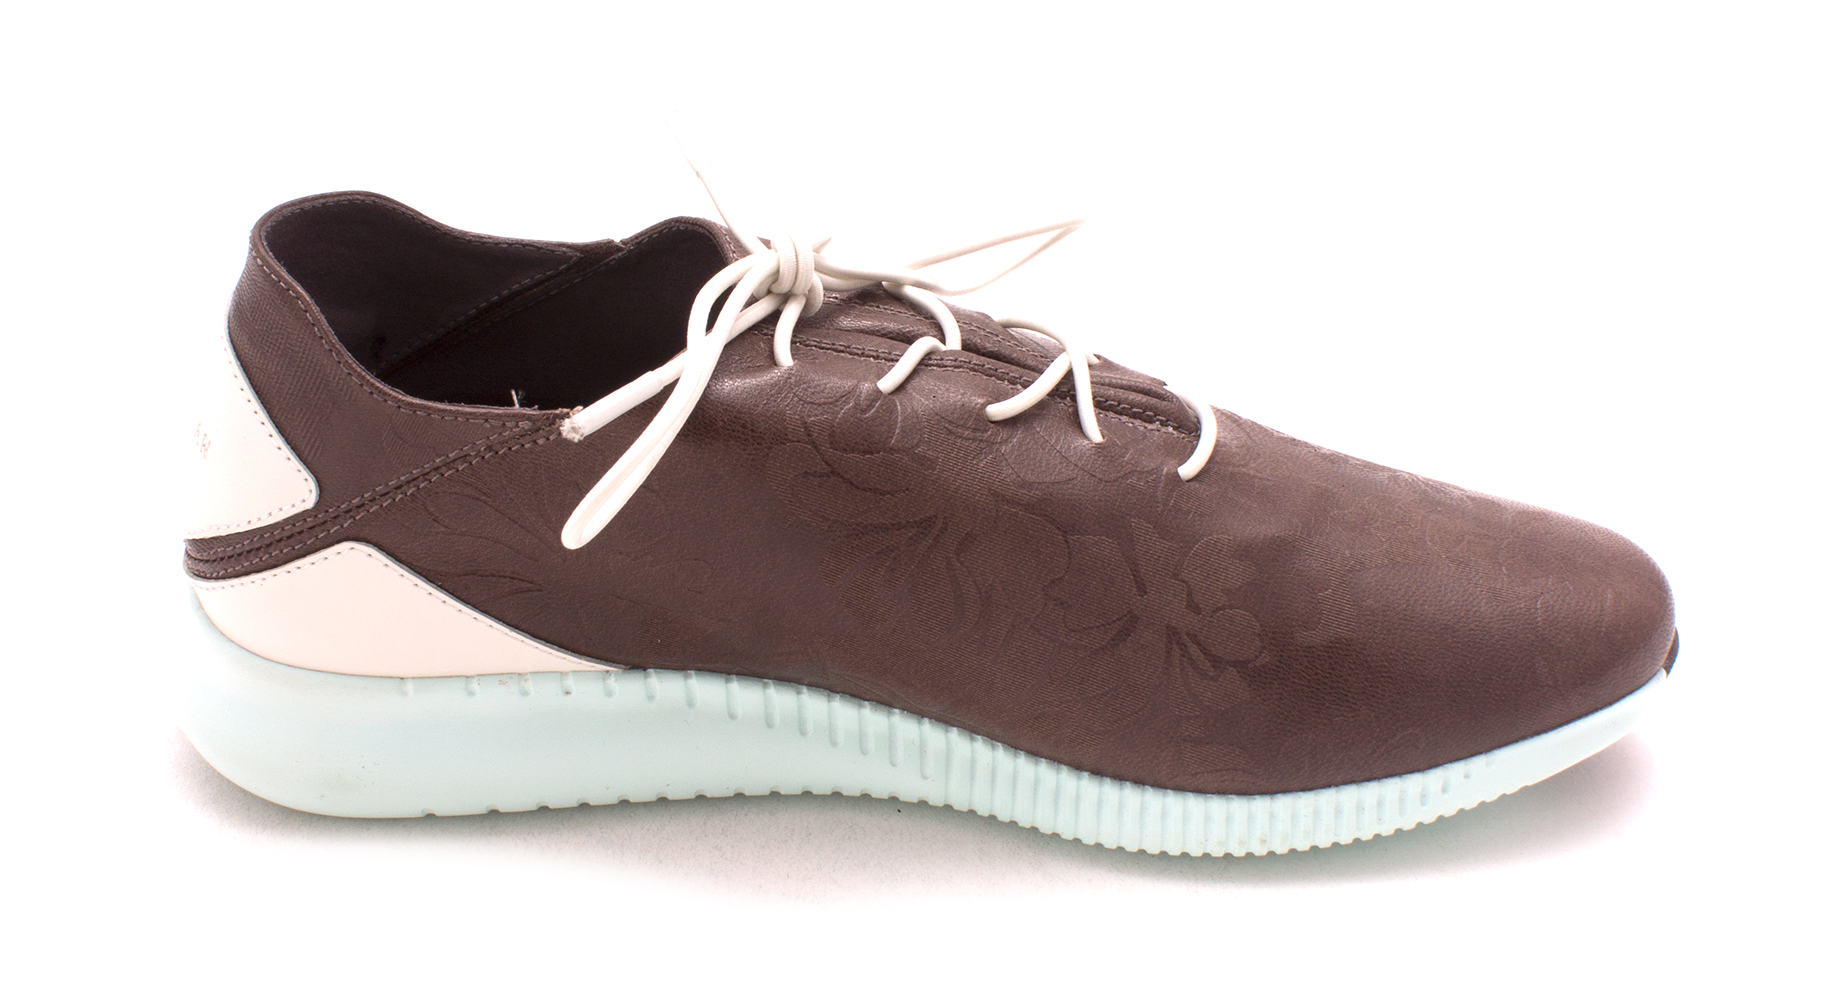 Cole Haan Womens Laverniasam Low Top Lace Up Fashion, Brown/White/Mint, Size 6.0